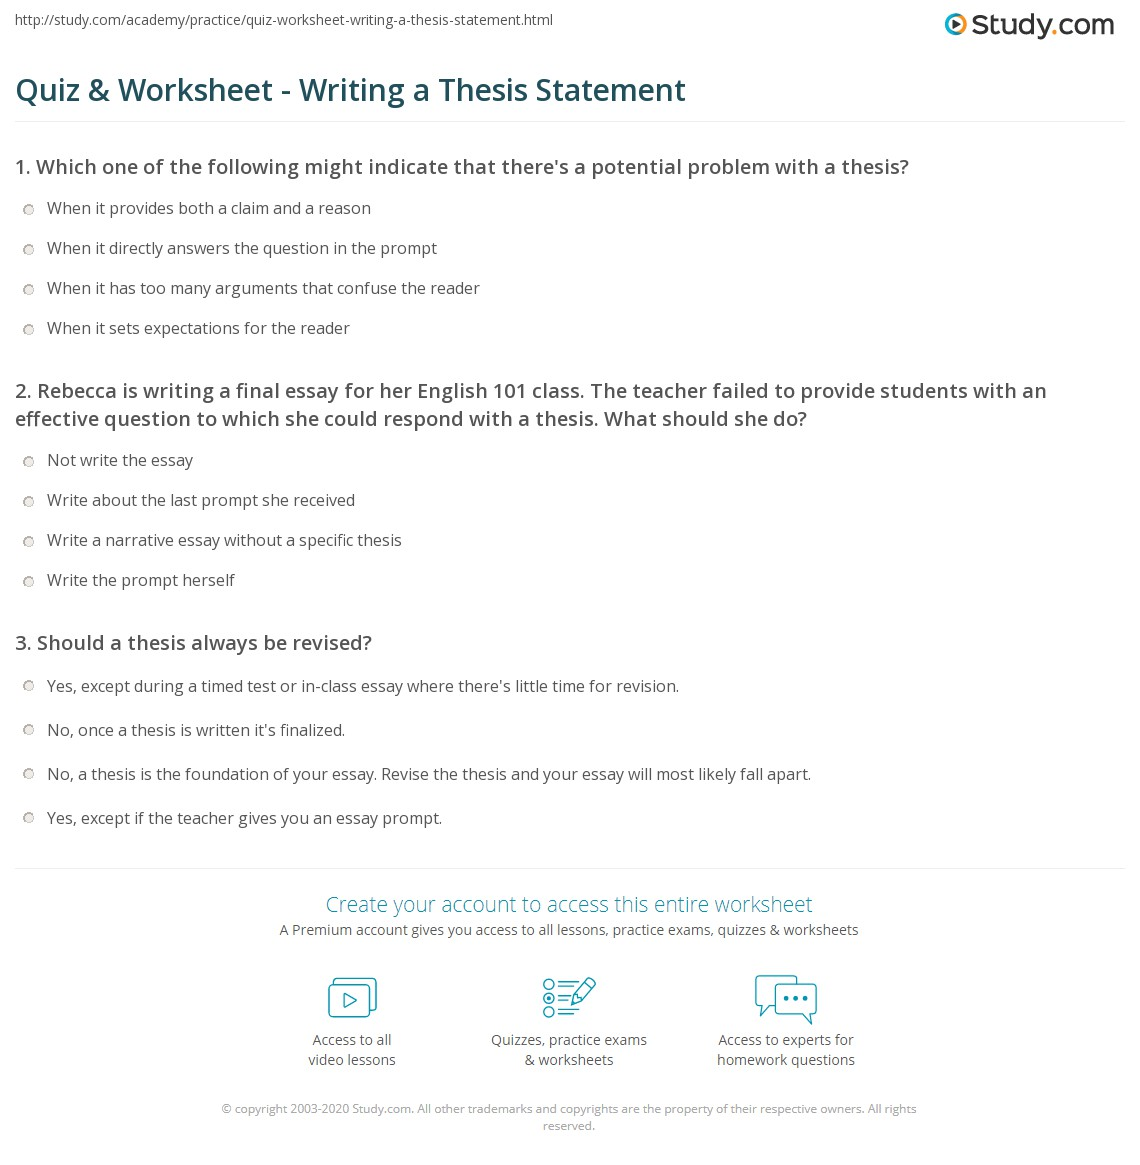 quiz worksheet writing a thesis statement com rebecca is writing a final essay for her english 101 class the teacher failed to provide them an effective question to which she could respond a